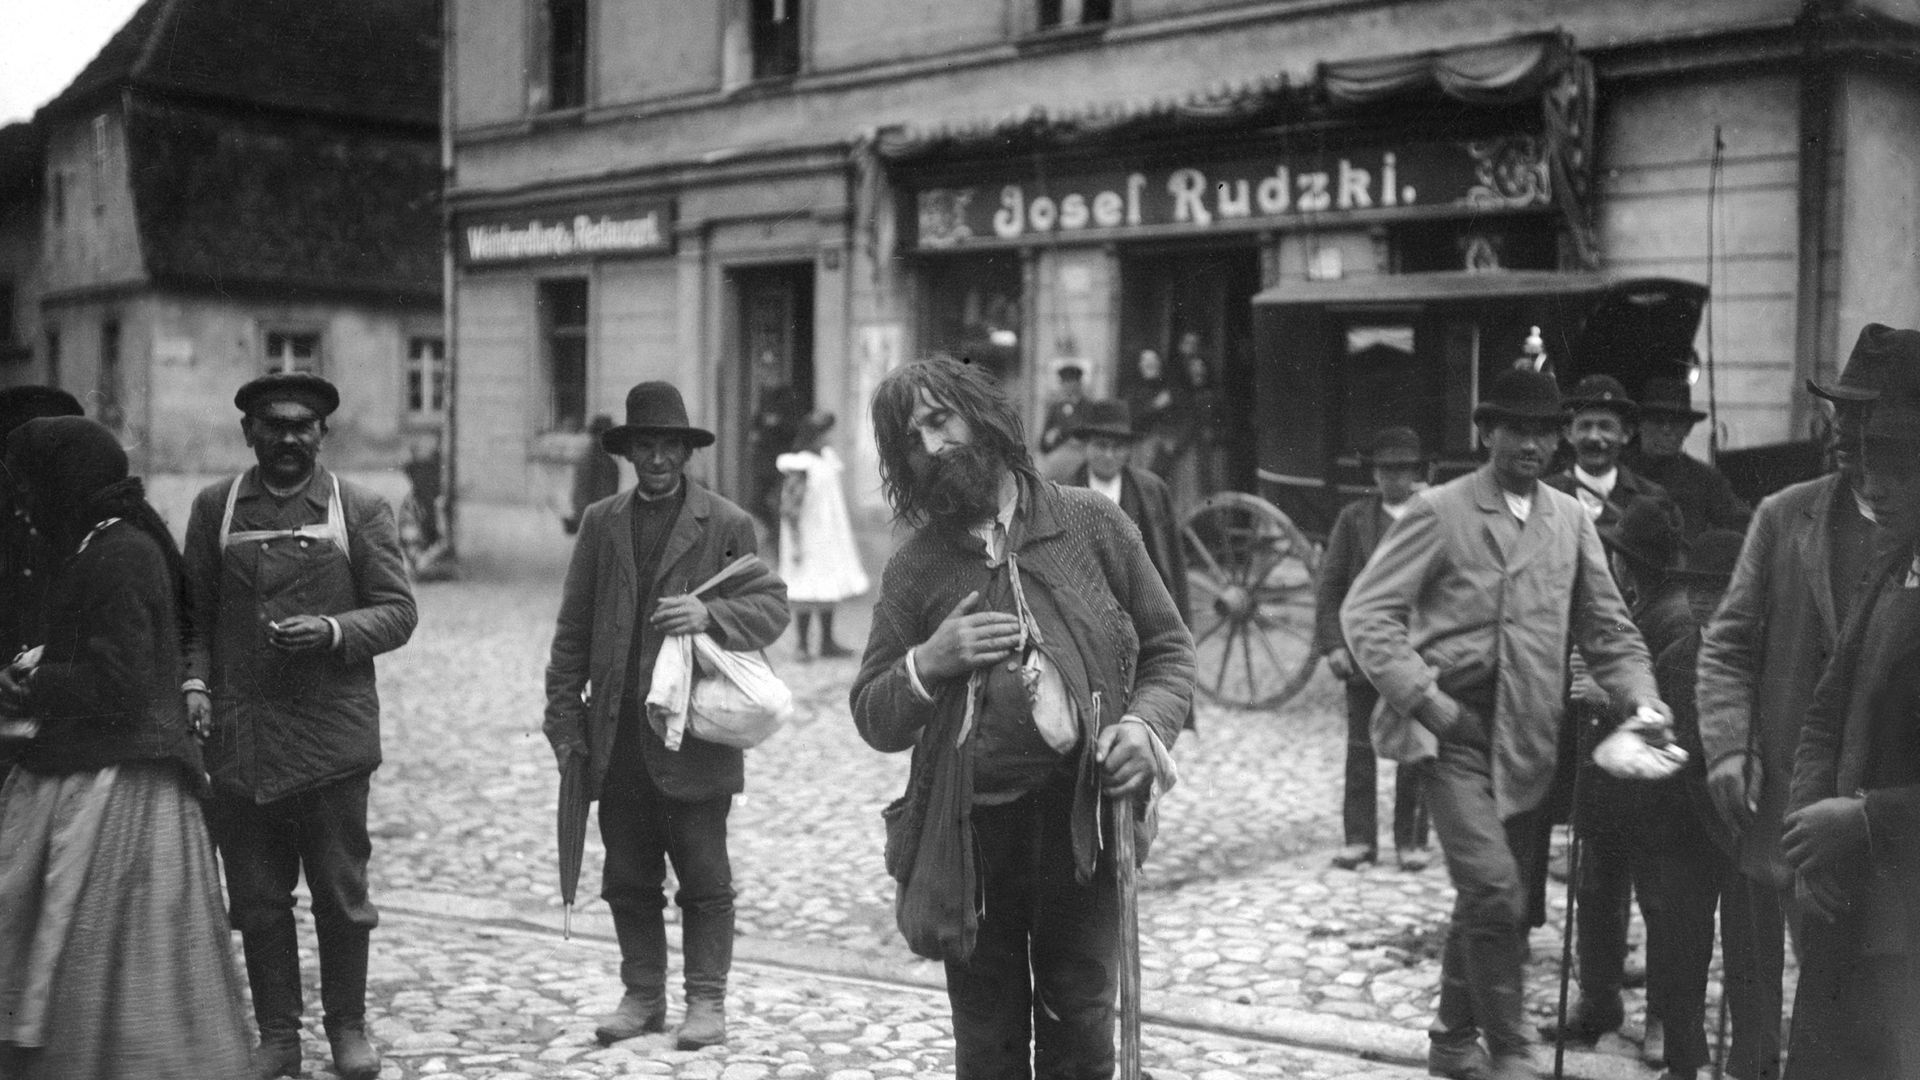 Locals stare at a beggar in the street in Posen, Prussia - now part of Poland - in a photograph from 1910 - Credit: ullstein bild via Getty Images